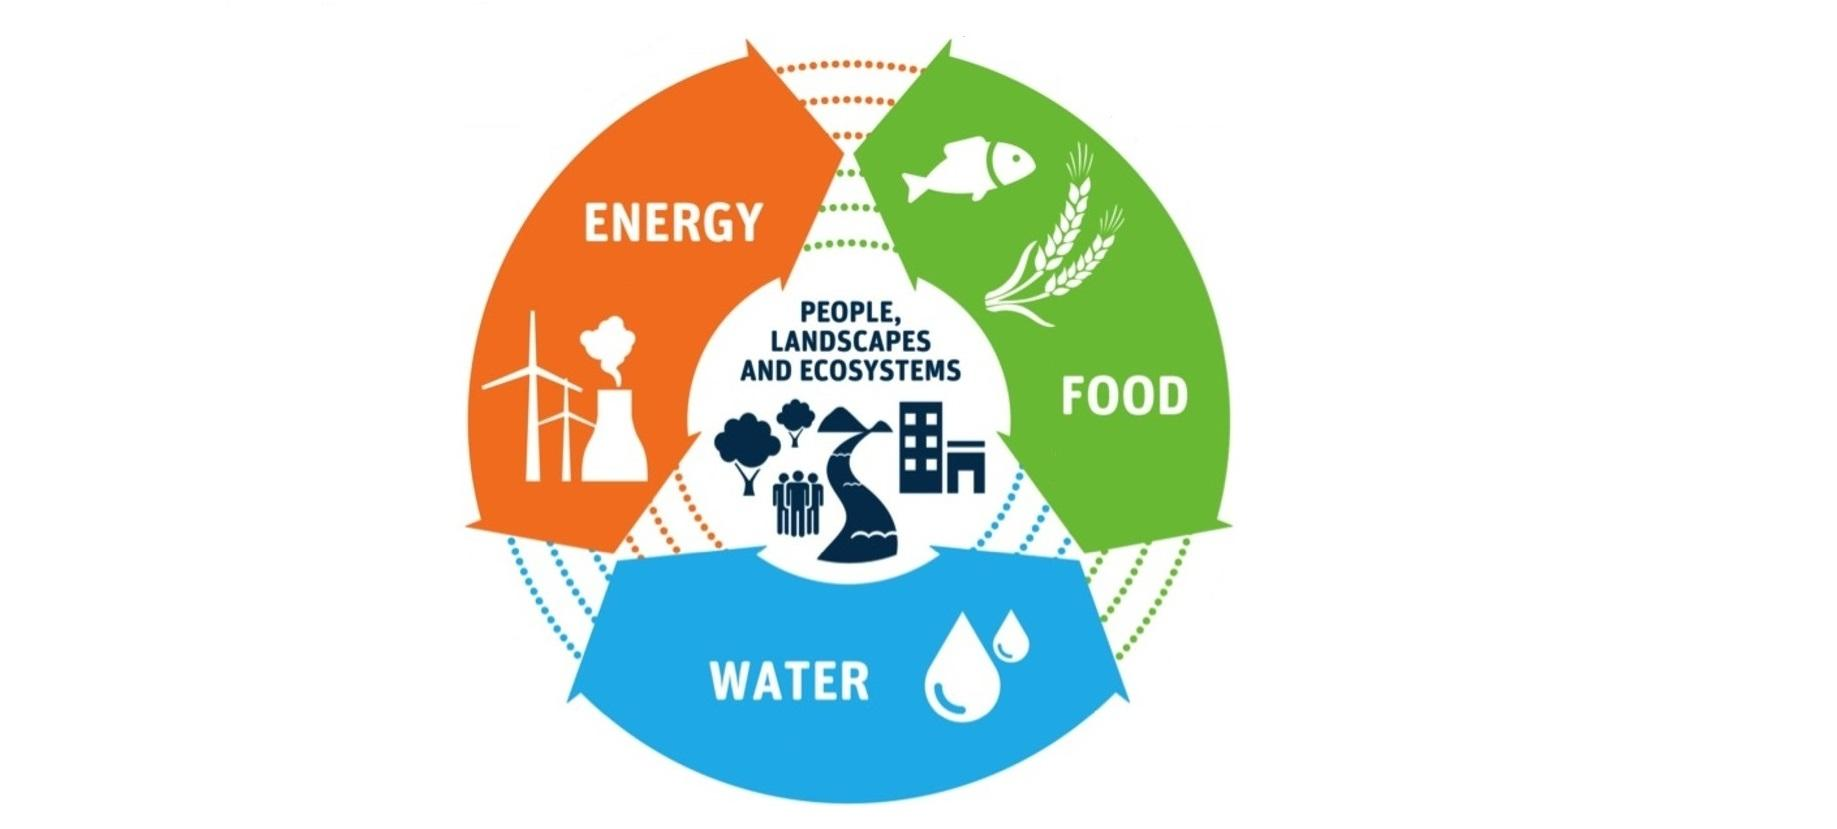 IB Geography: The Water, Food Energy Nexus and Security